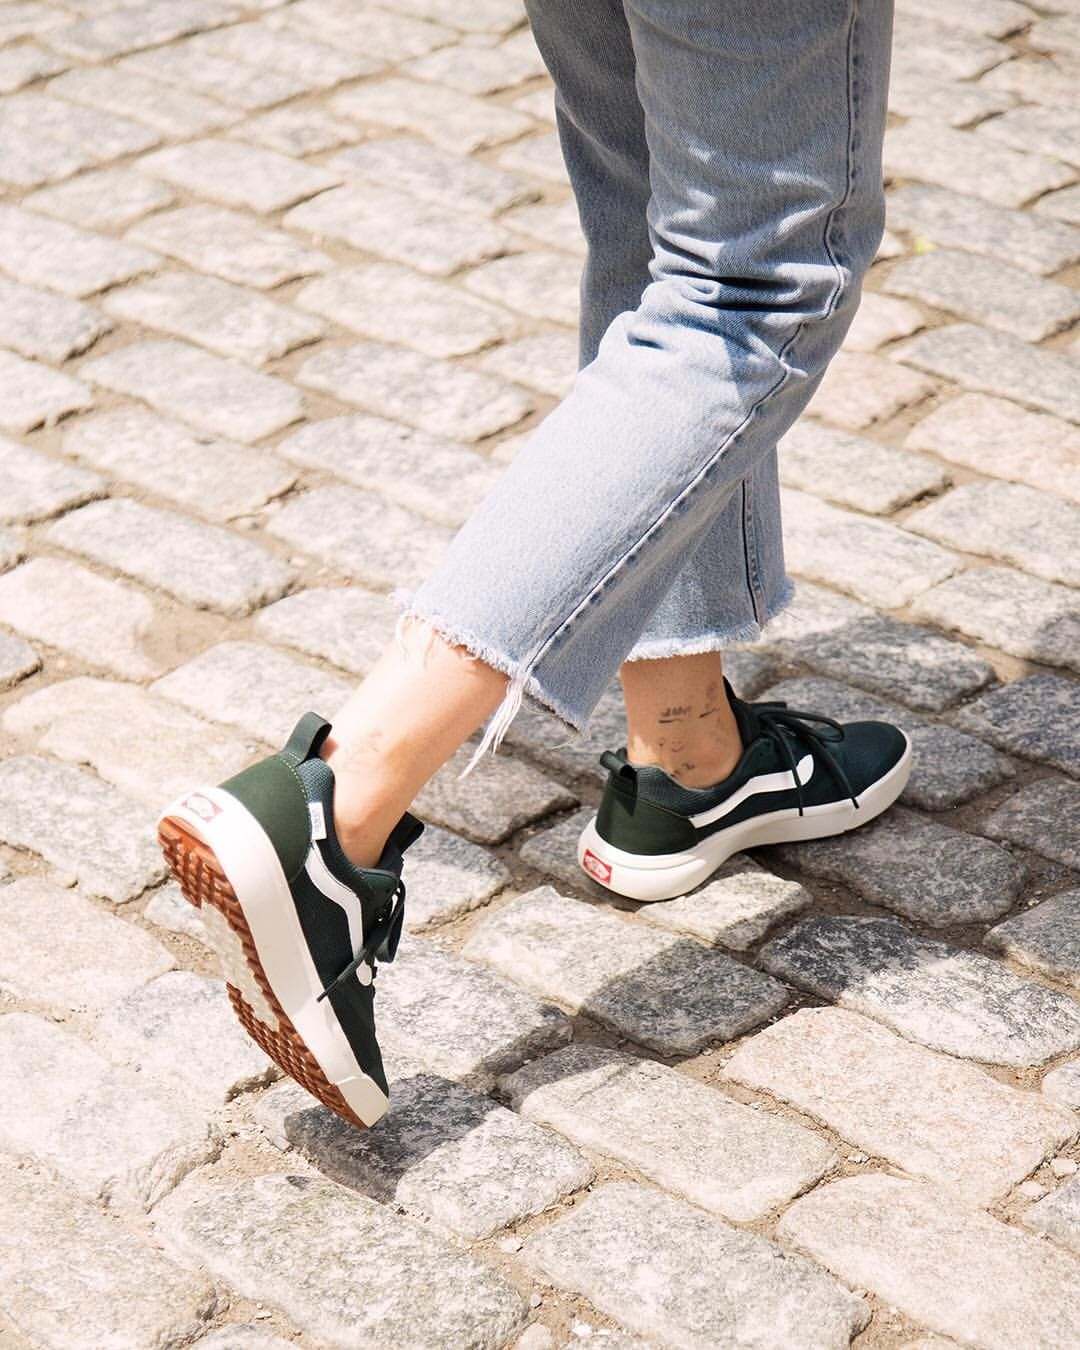 8f2b58a425c Getting to your destination is half the fun— do it in comfort and style.  Shop the Salt Wash UltraRange Rapidweld and the rest of the lineup…